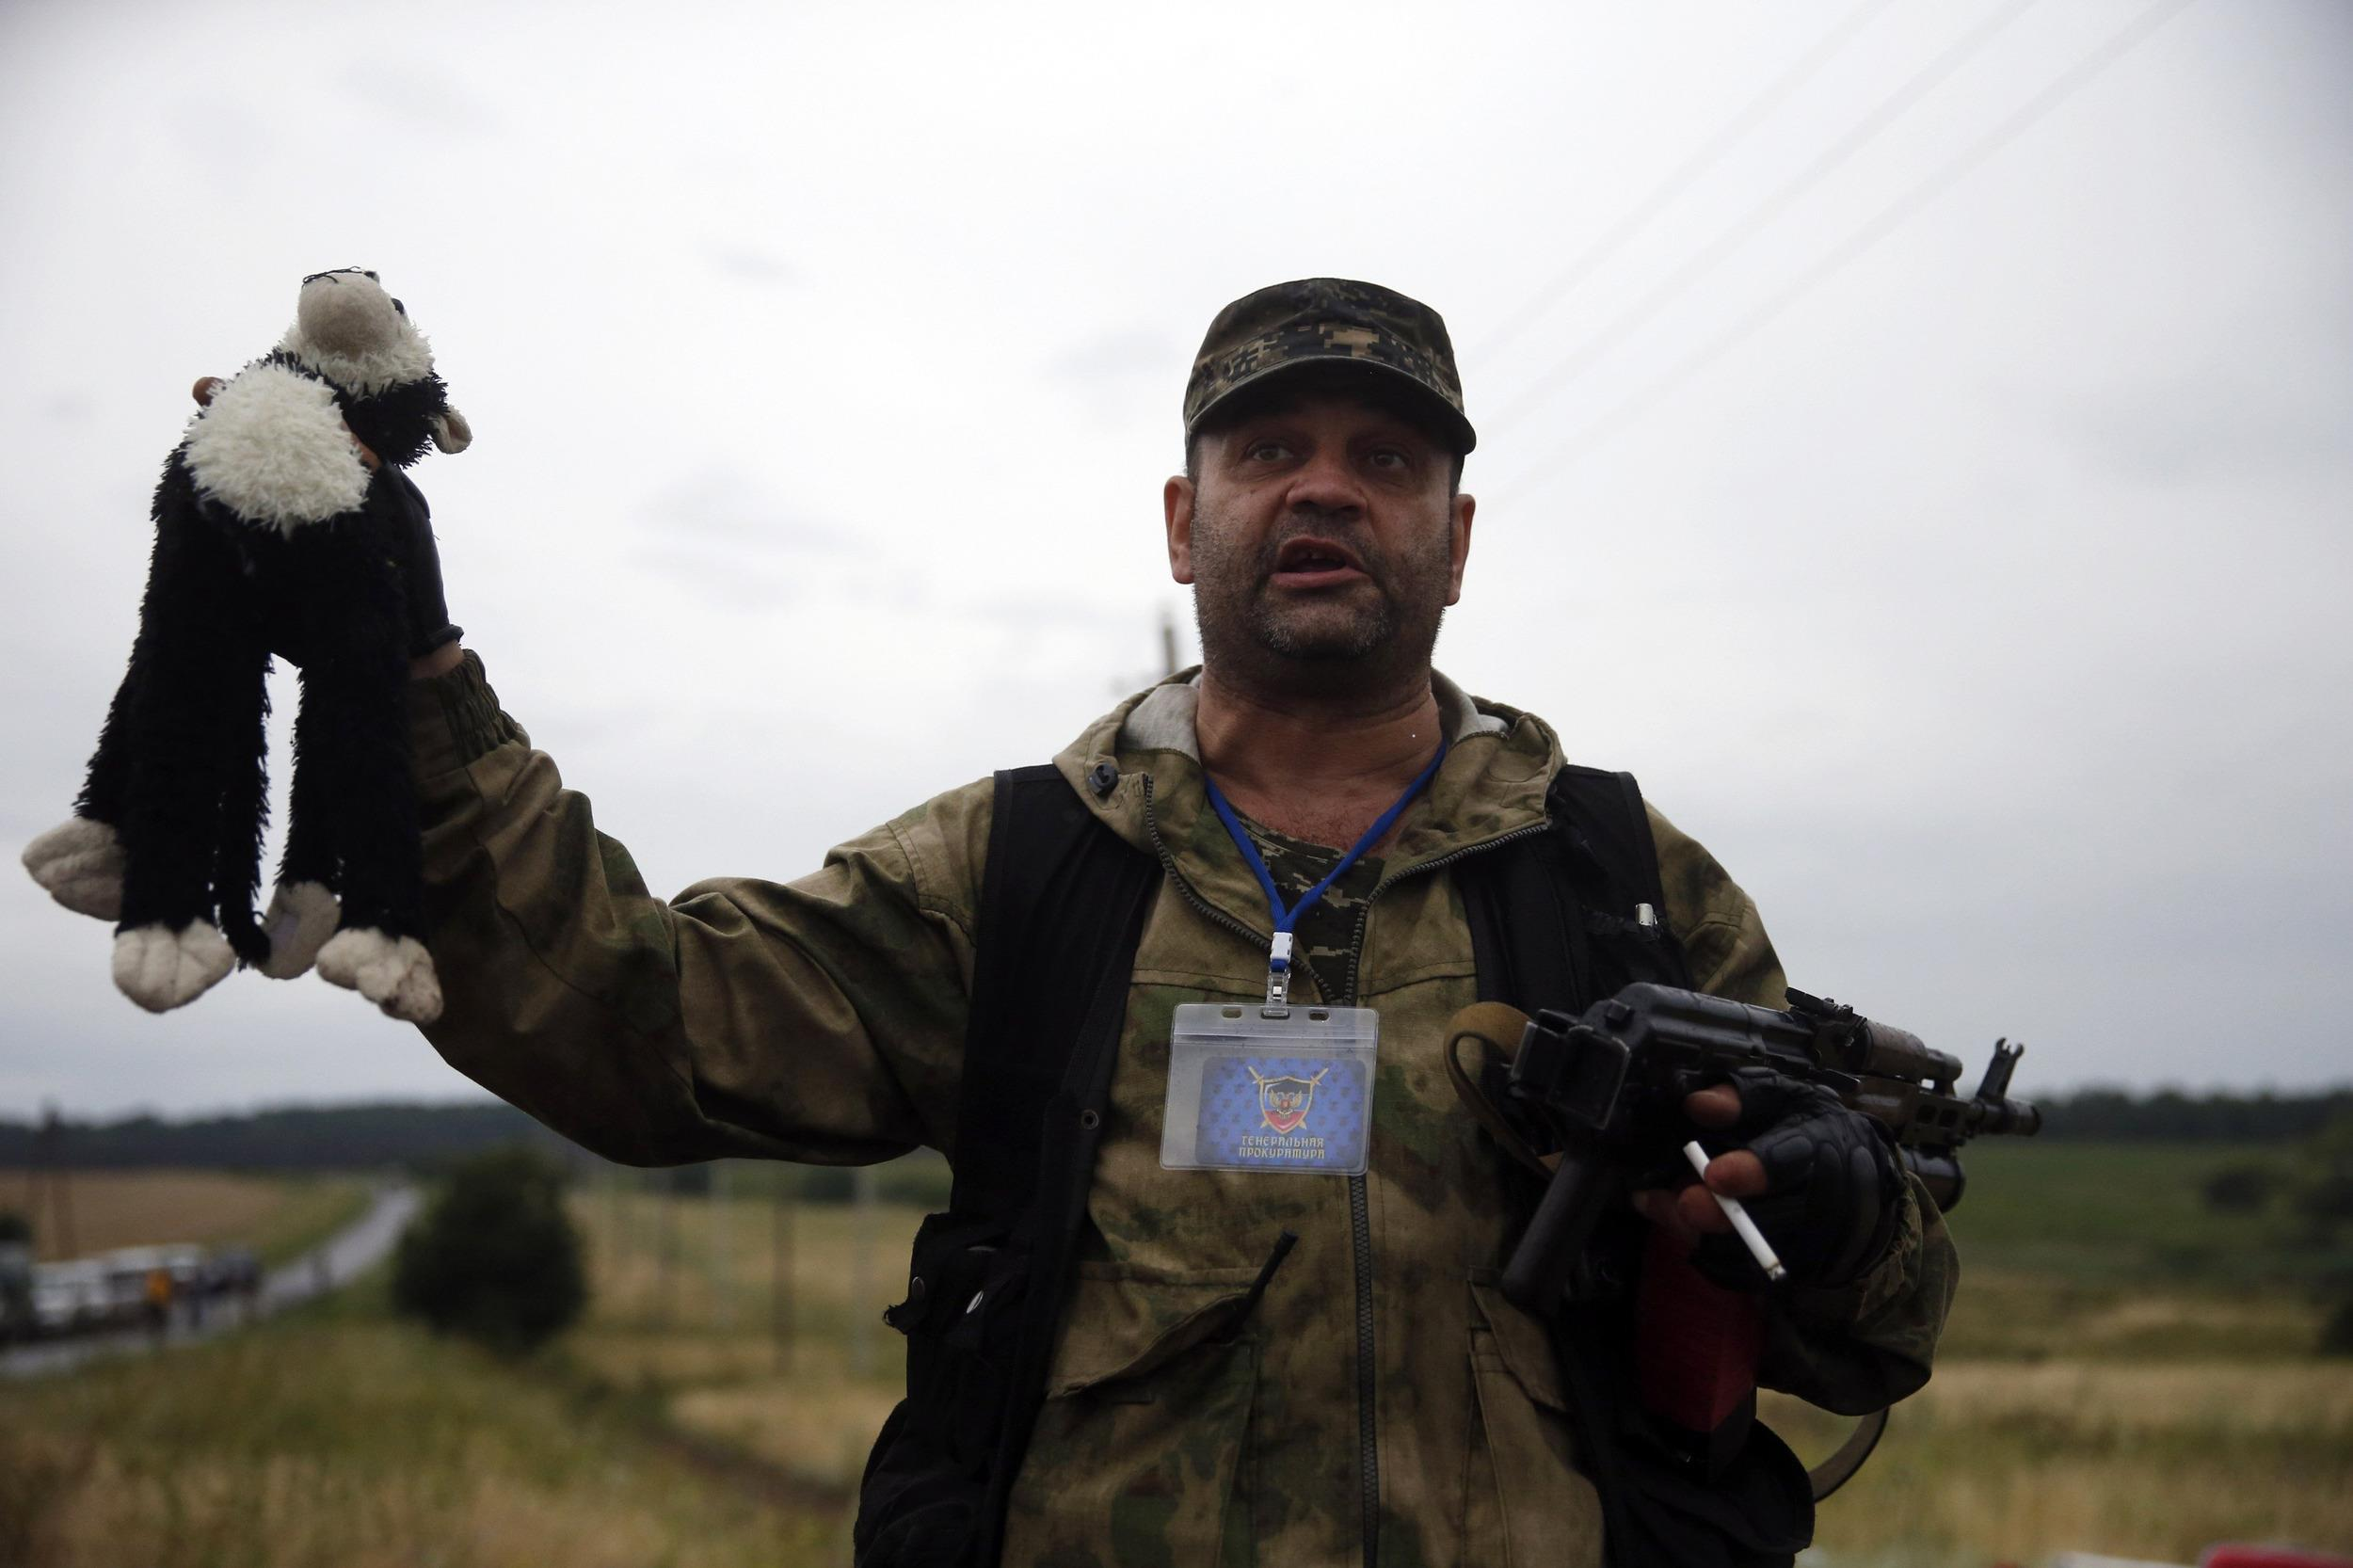 A pro-Russian separatist holds up a stuffed toy found at the crash site of Malaysia Airlines flight MH17, near the settlement of Grabovo in the Donetsk region